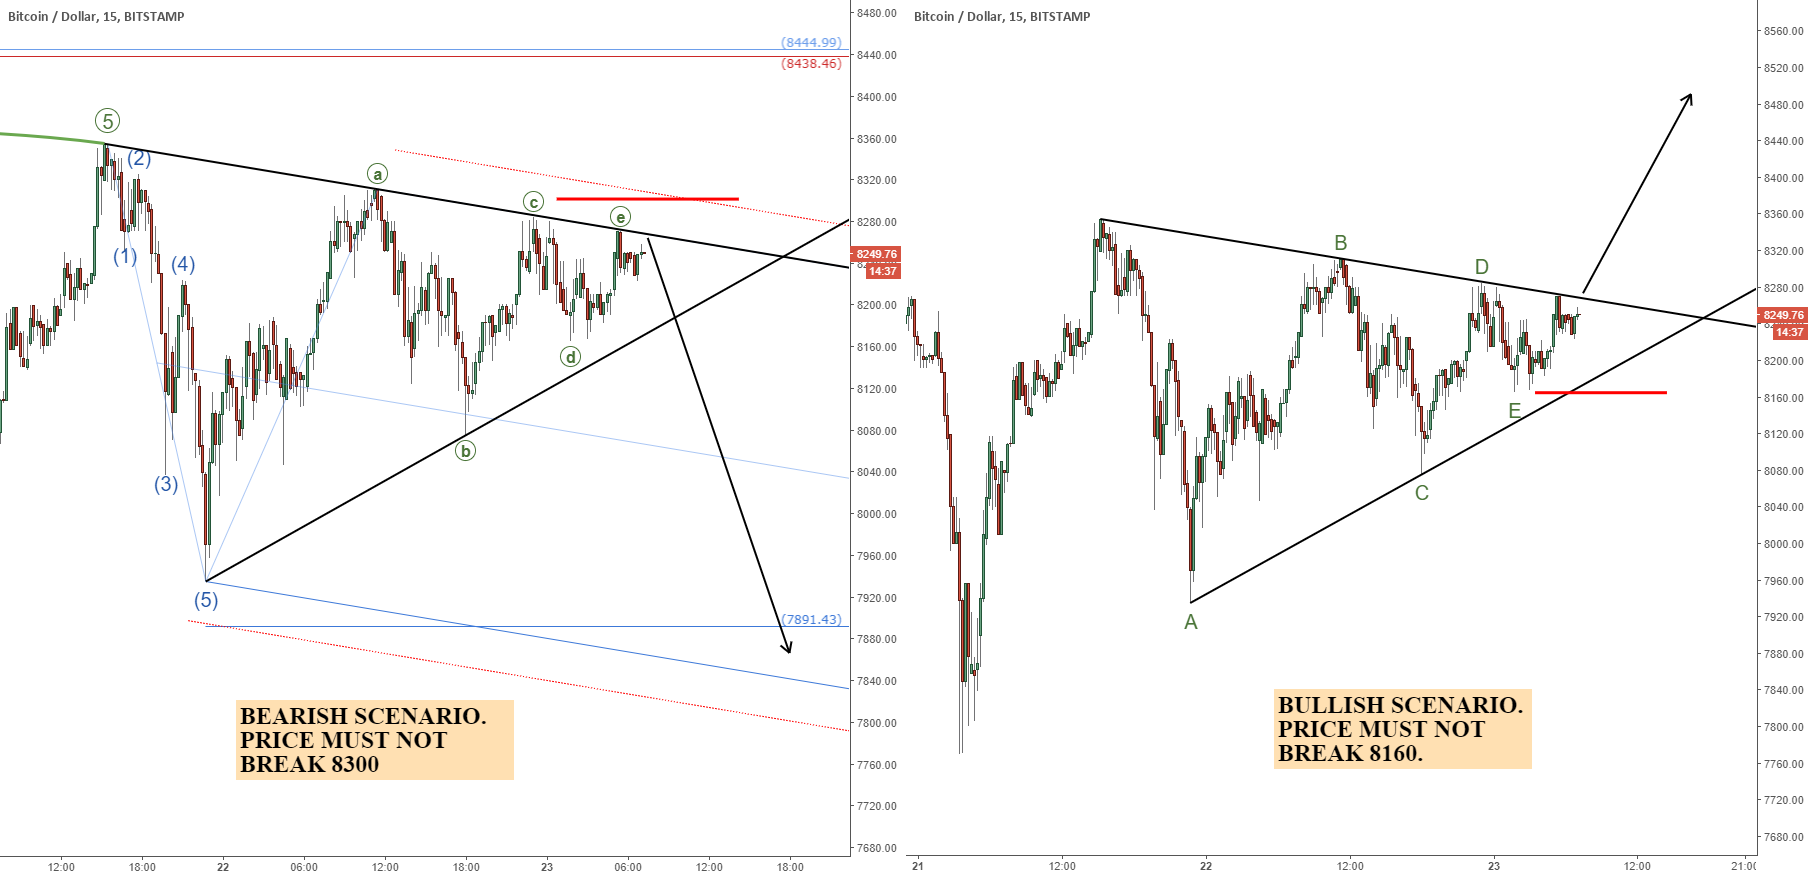 Bitcoin (BTCUSD): Crossroads Triangle